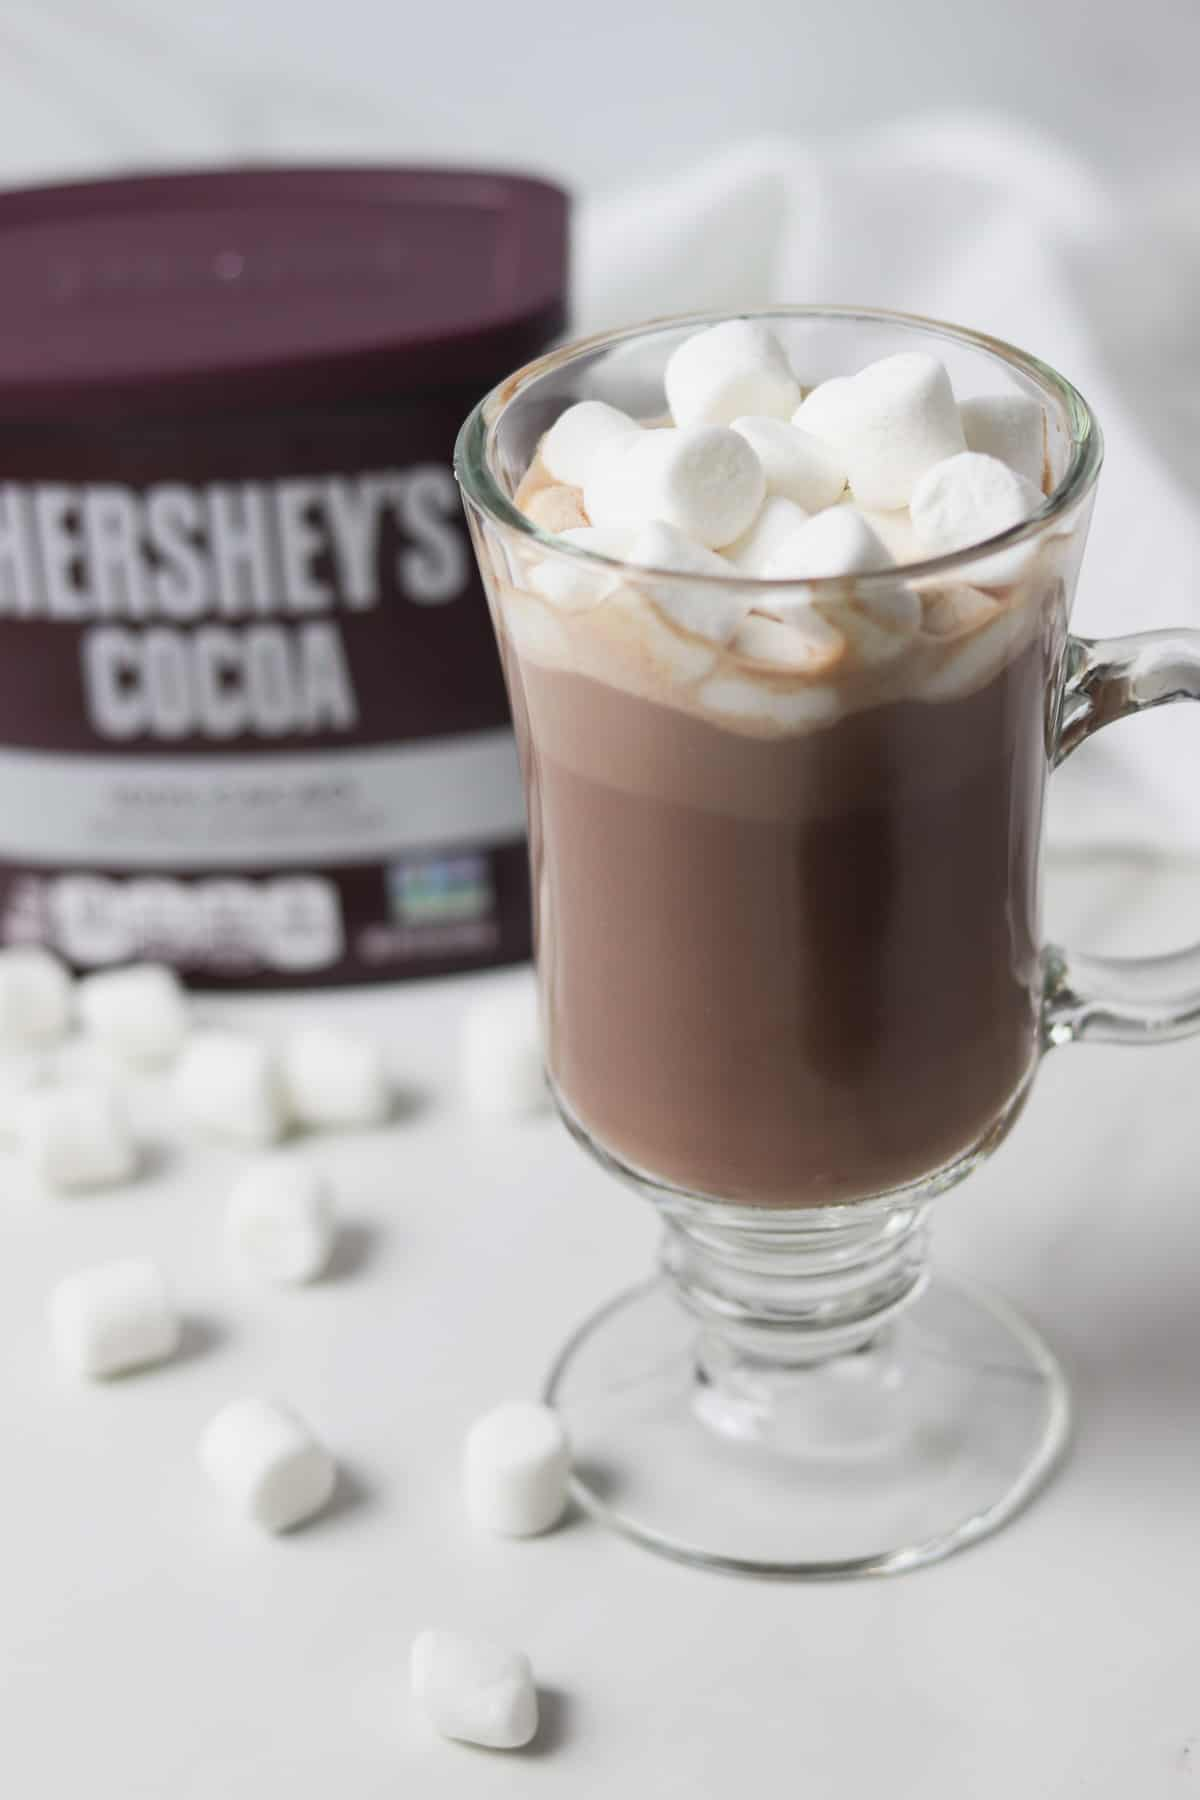 glass of sugar-free hot cocoa with marshmallows on top